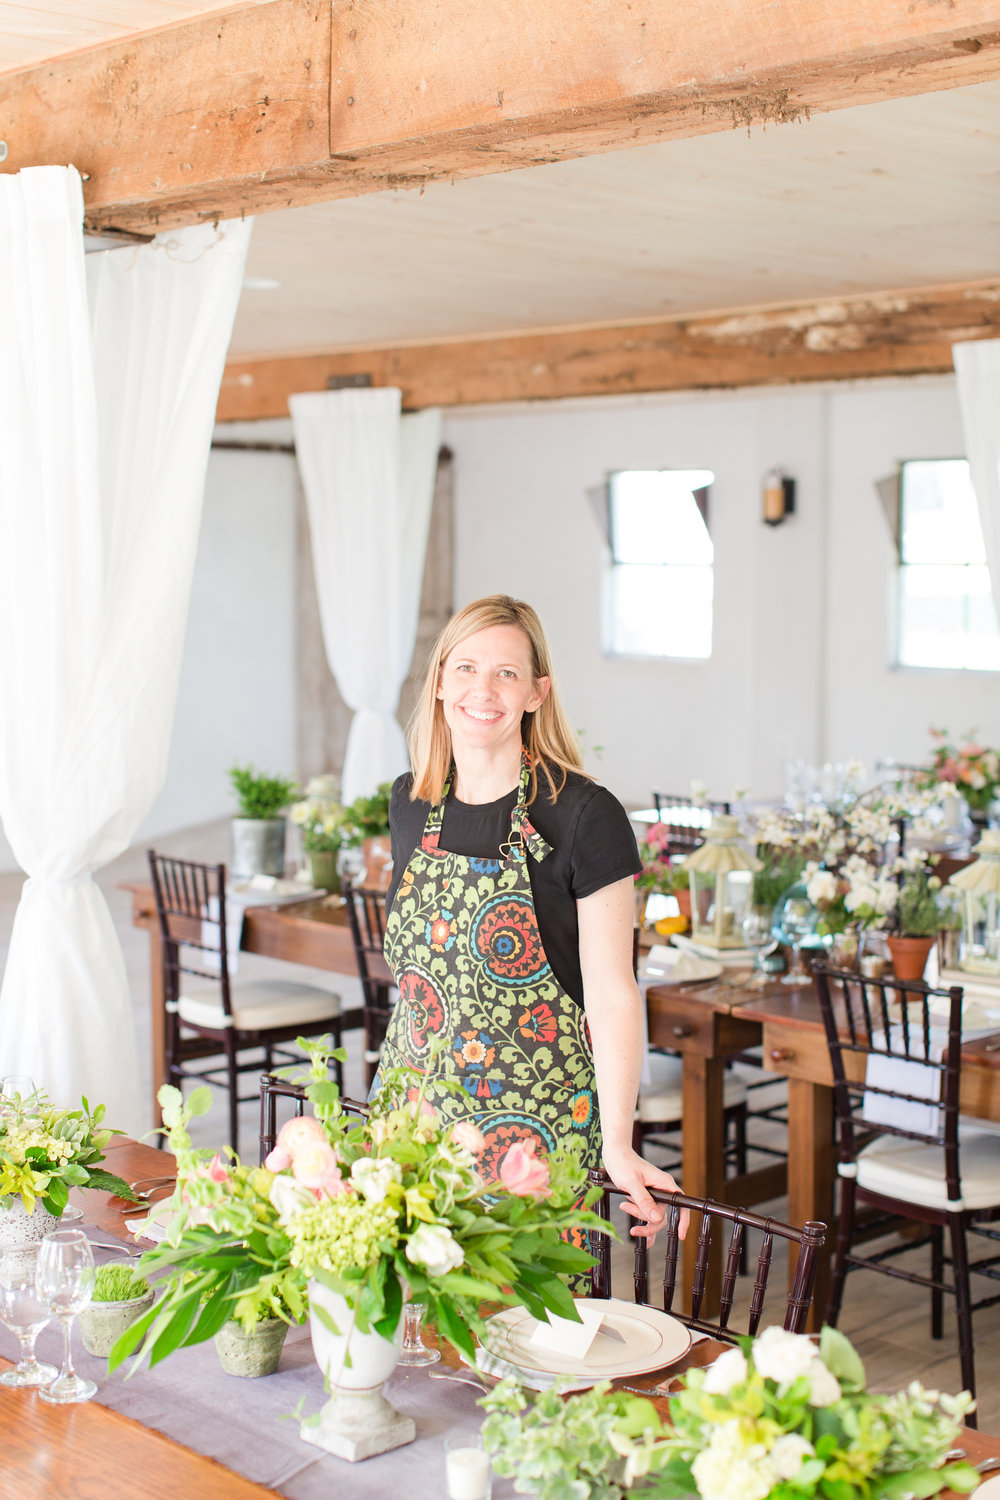 I had so much fun designing for this dinner! The fresh greenery, seasonal flowers (tulips! ranunculus! daffodil! dogwood!), and potted plants running along the farmhouse tables really brought the spring time vibe to the event. The best part, though, was getting to sit down to enjoy the deeeelicious food and have an opportunity to meet so many other creative professionals from the Loudoun County area!